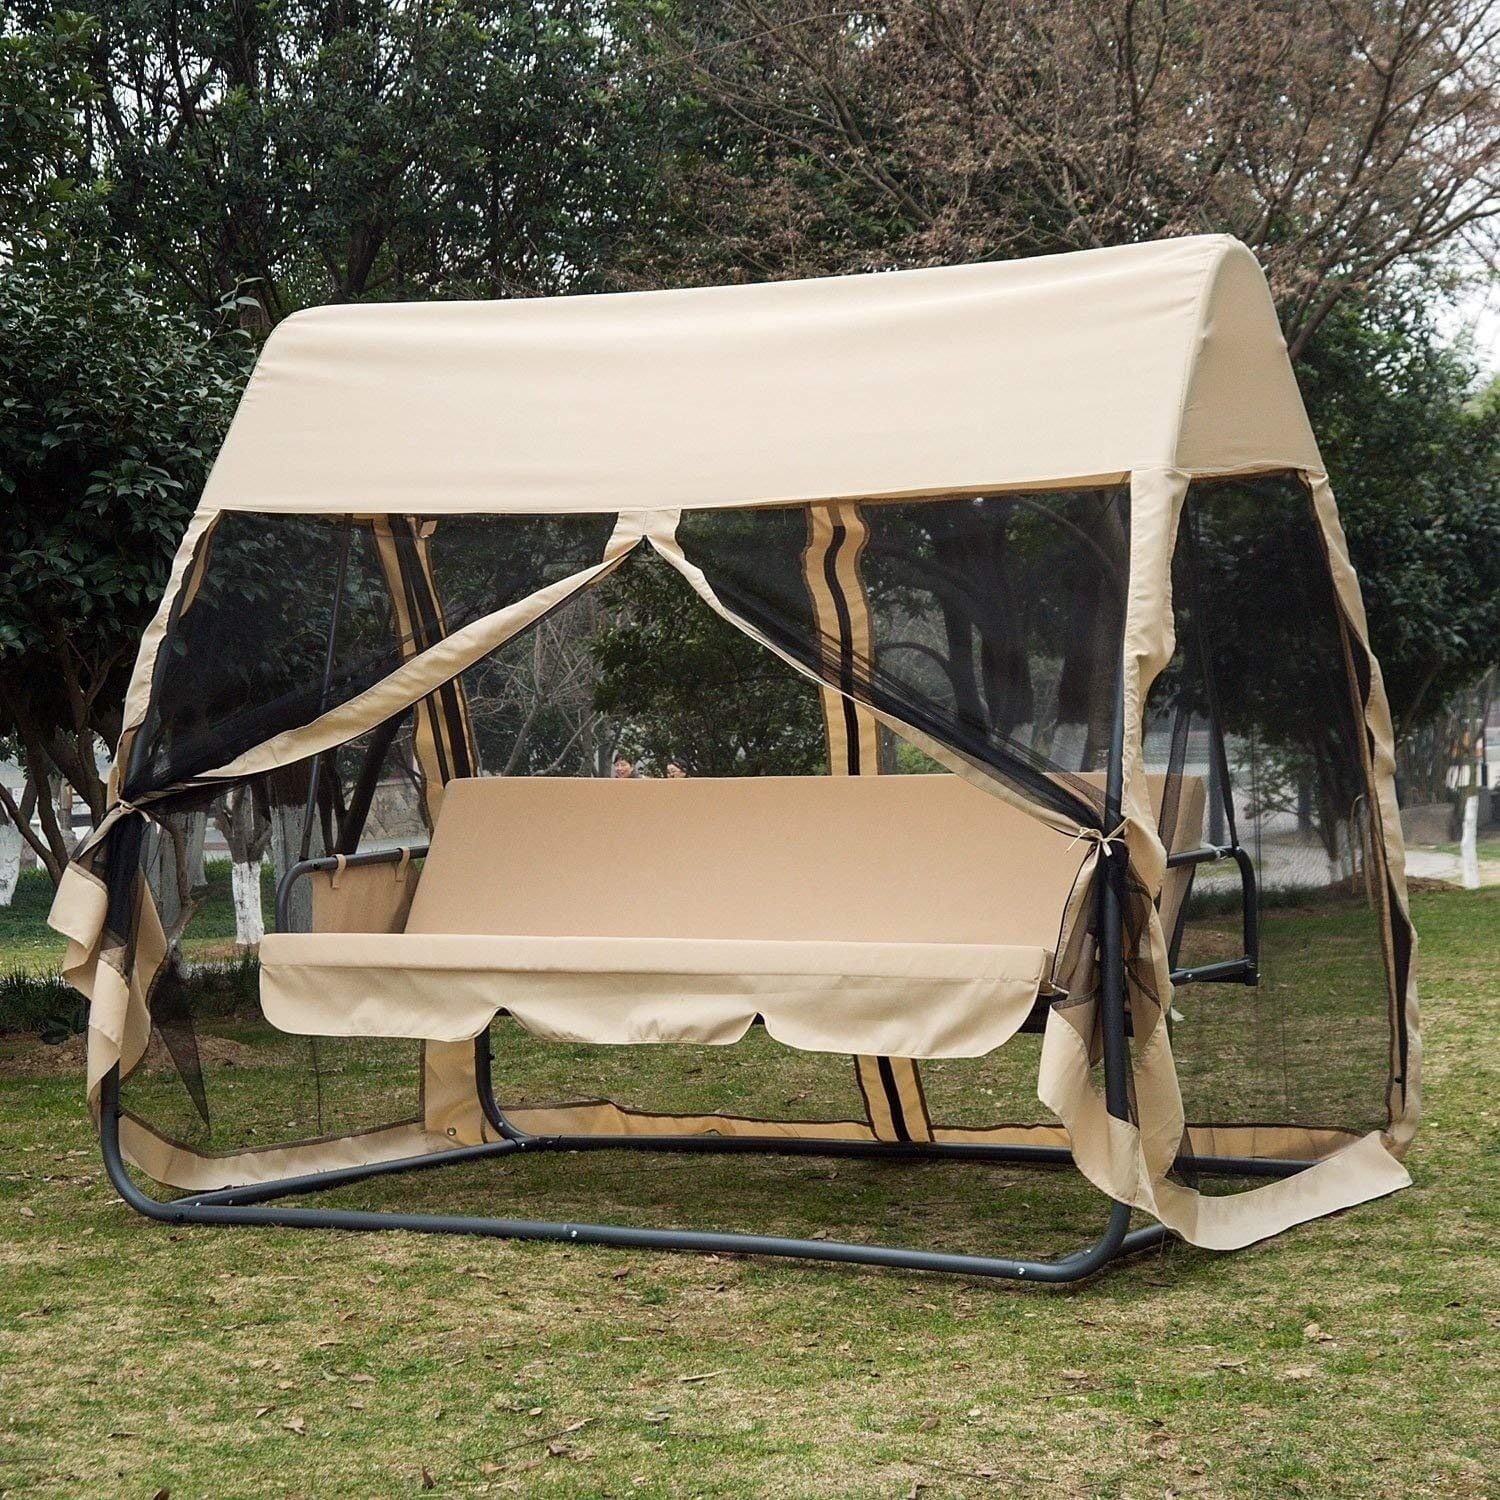 Outsunny 3 Seat Outdoor Covered Convertible Swing Chair/Bed with Mosquito Netting